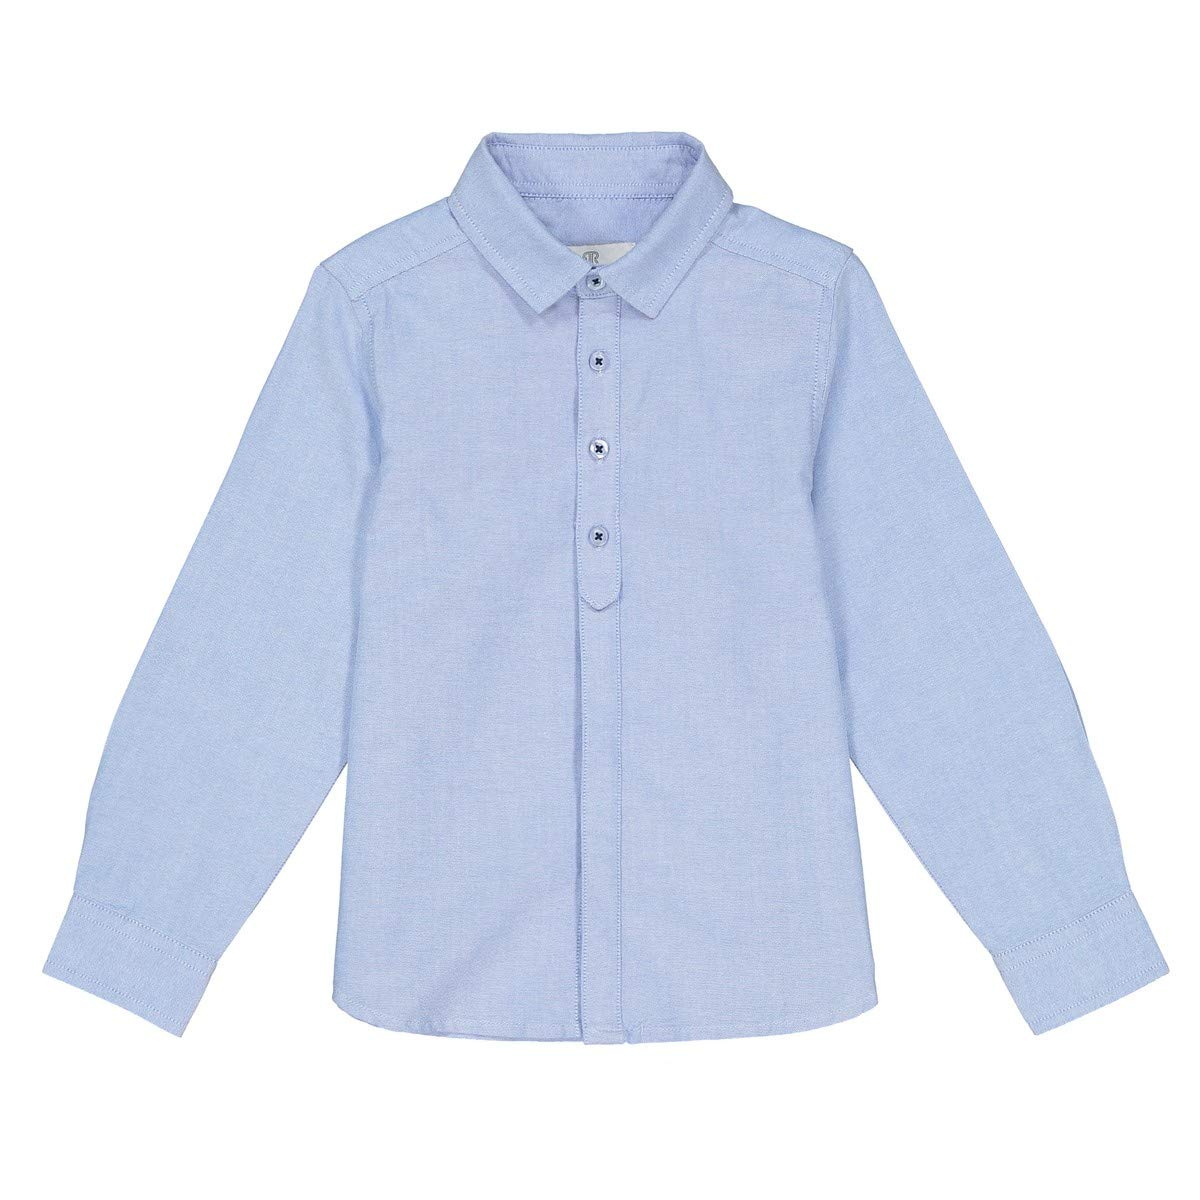 La Redoute Collections Big Boys Smart Shirt with Bow Tie 3-12 Years